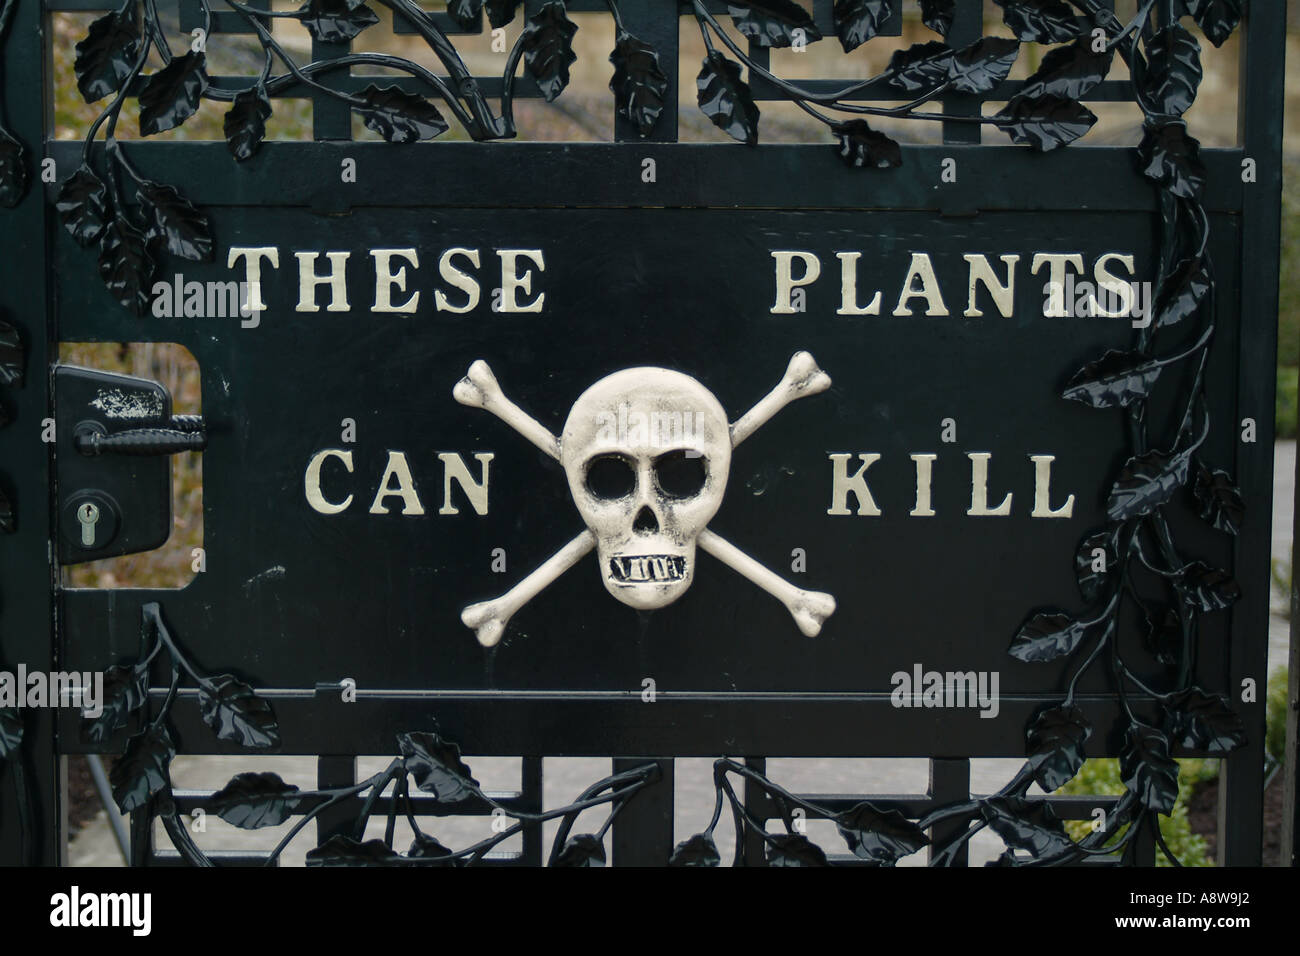 These plants can kill  The poison garden at Alnwick Water